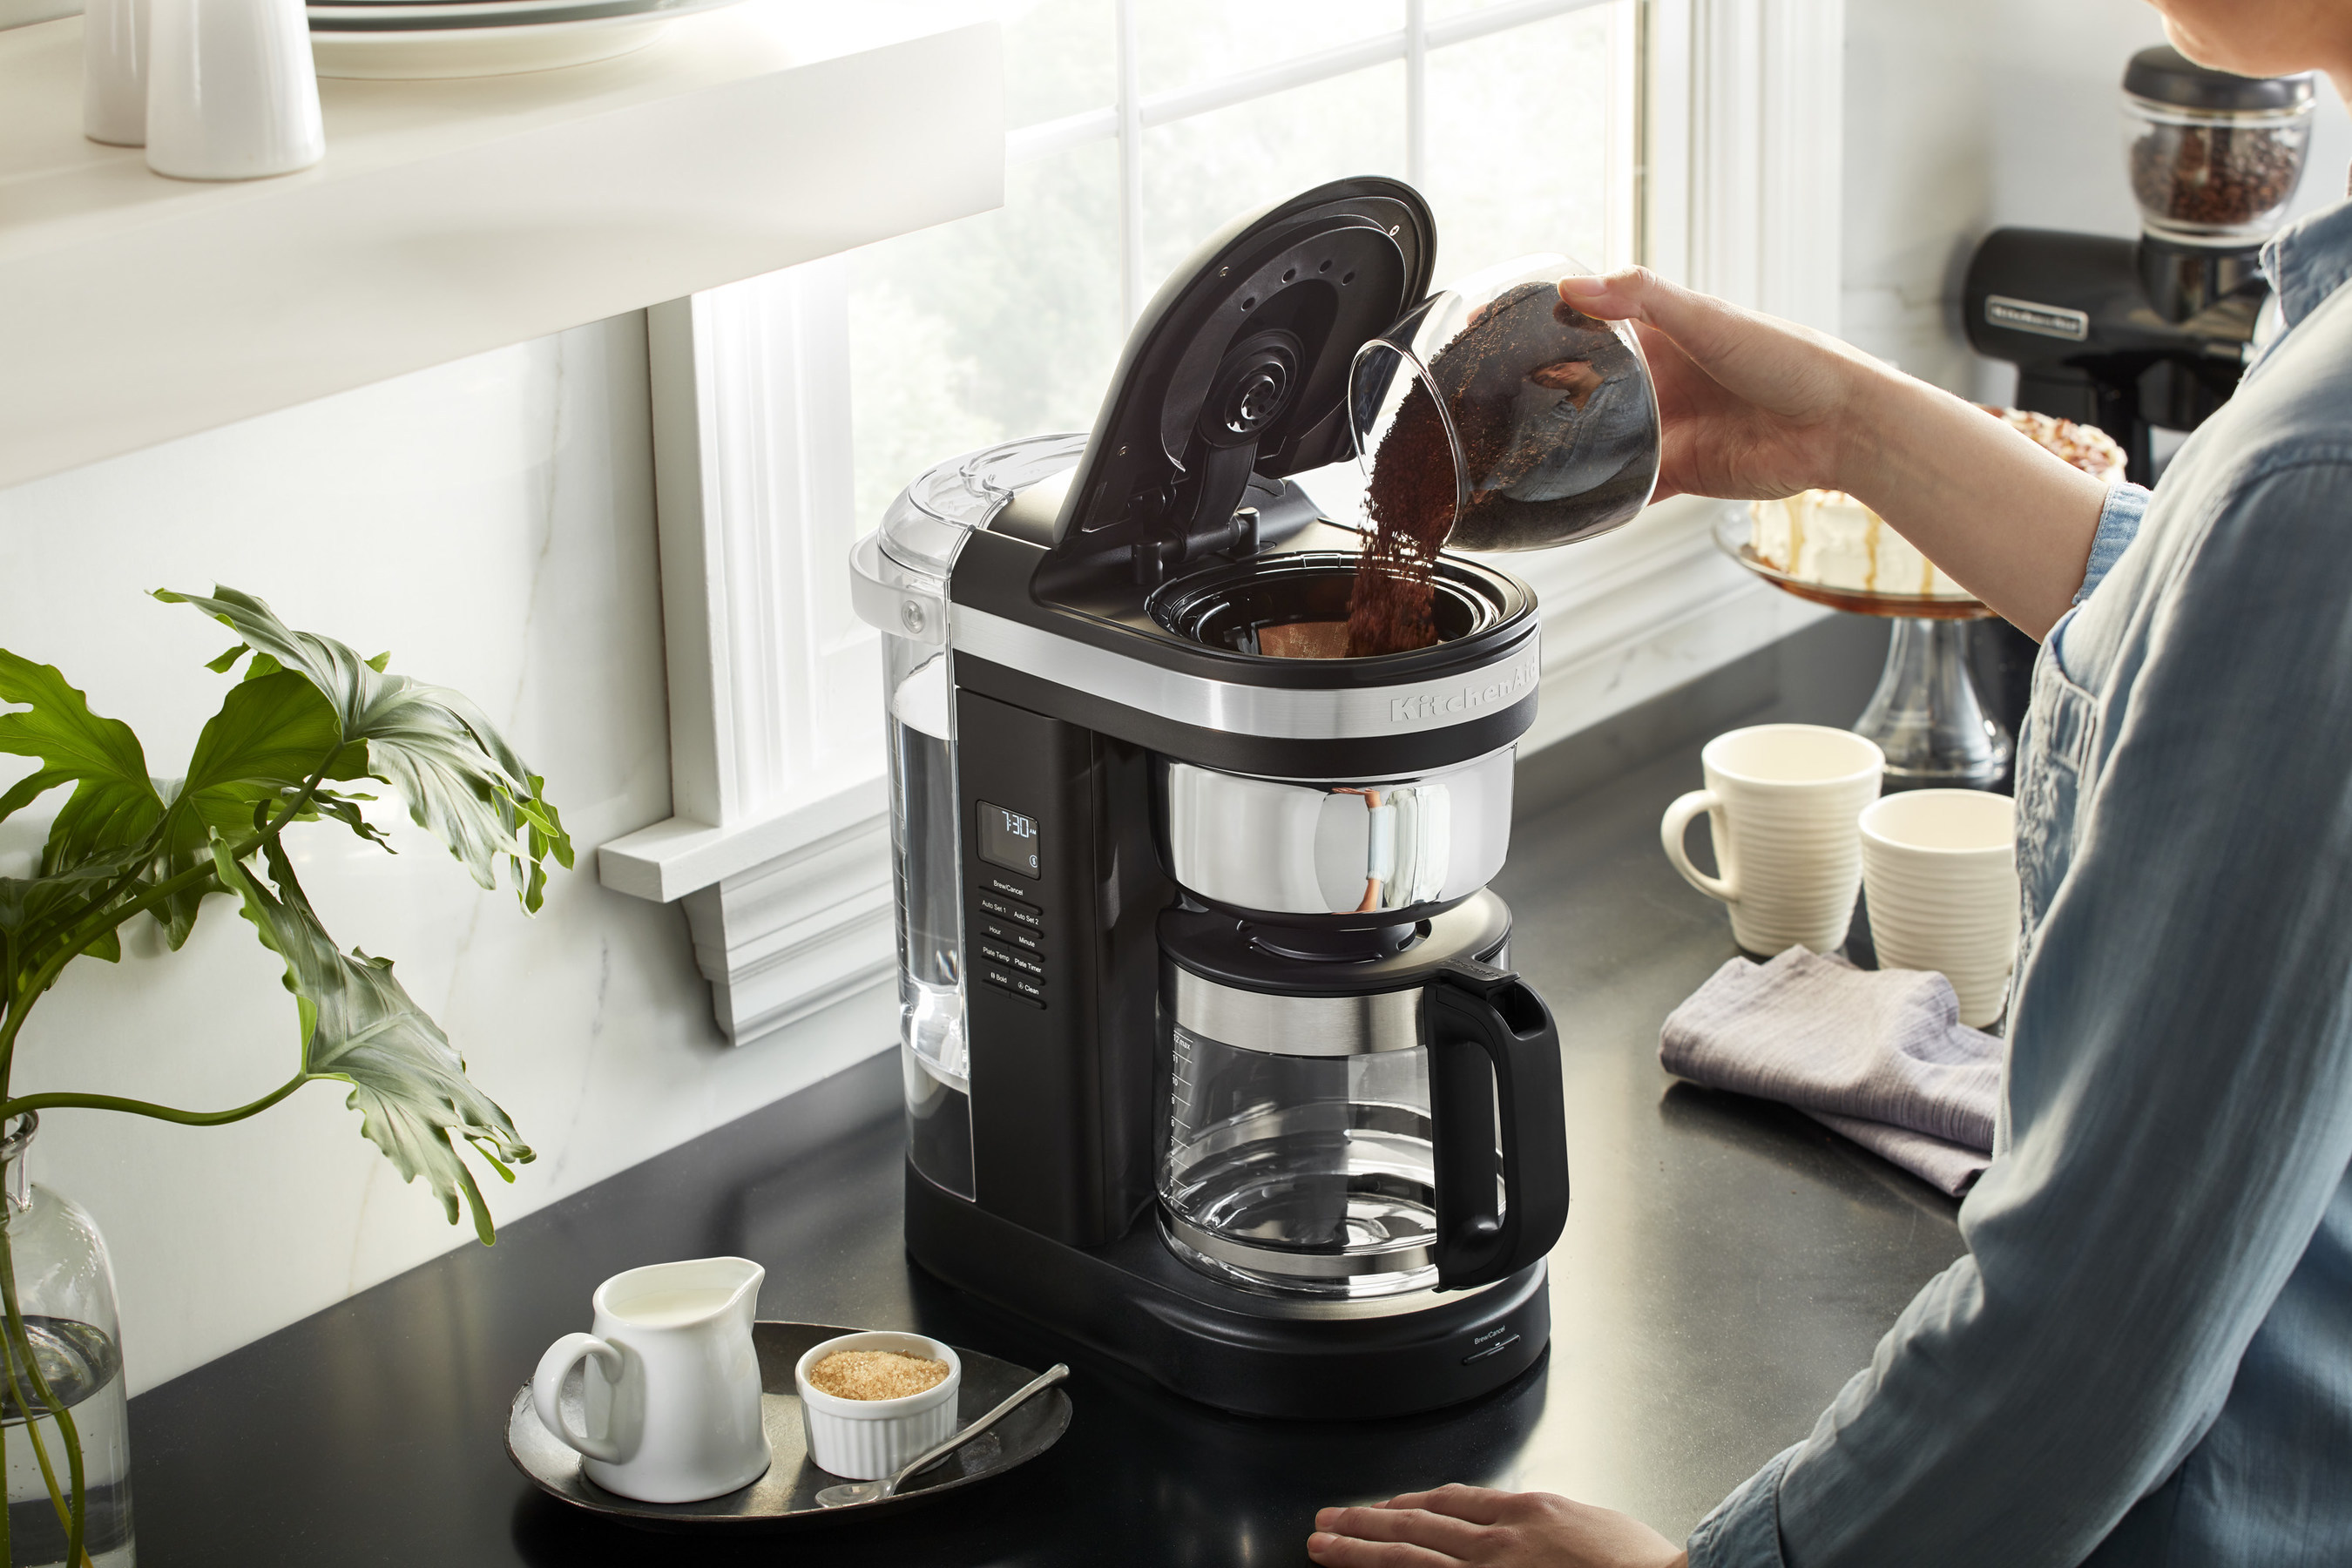 New Kitchenaid Coffee Makers Reinvent Drip